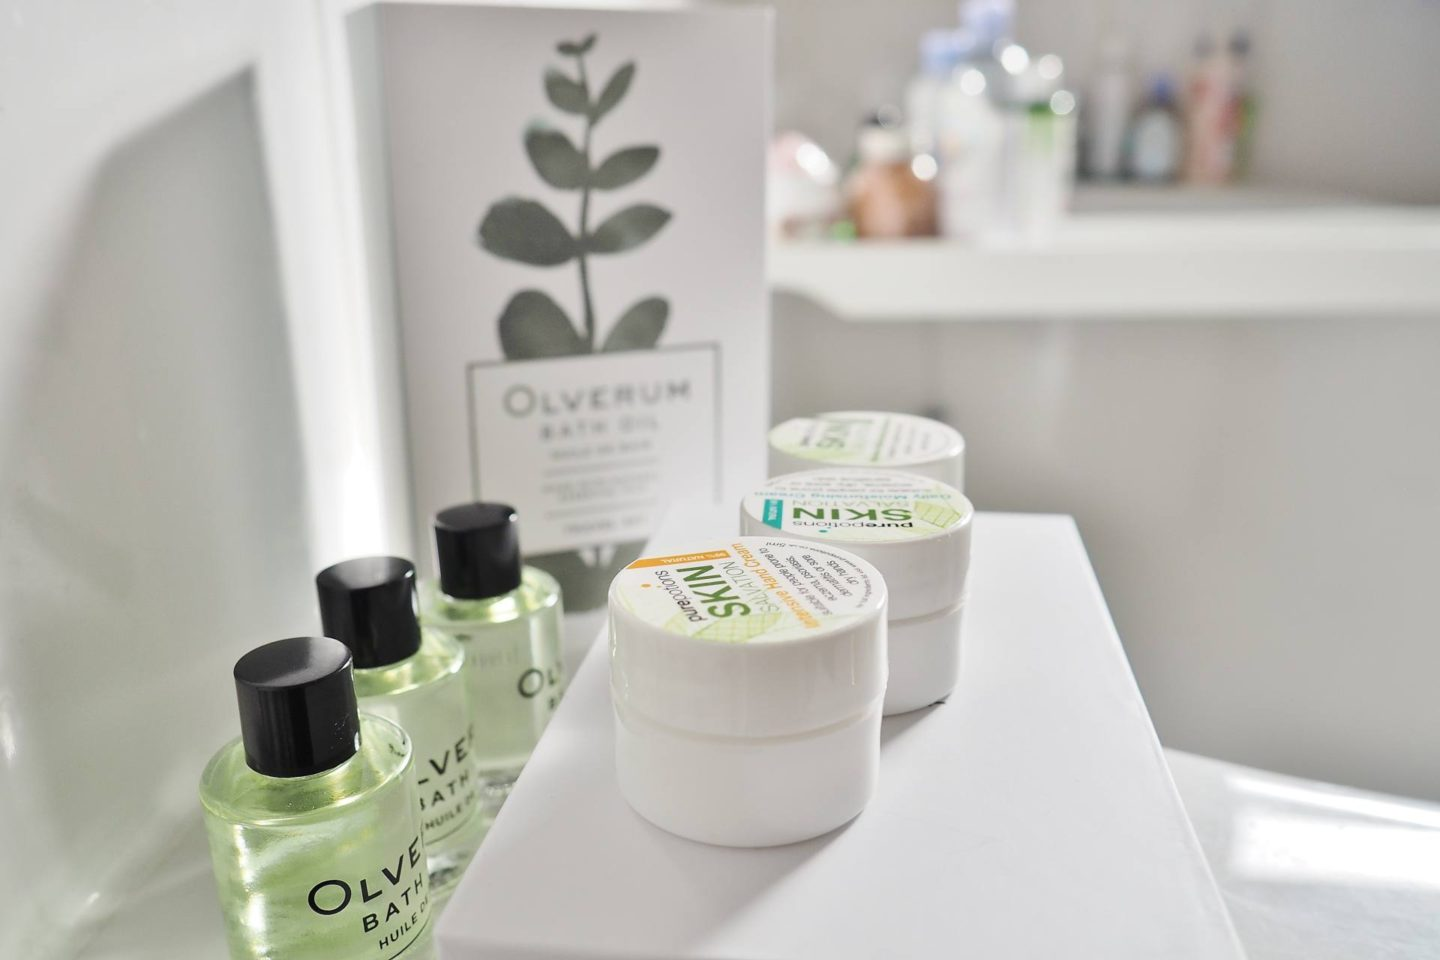 Cruelty-Free-Bath-Time-Products-To-Use